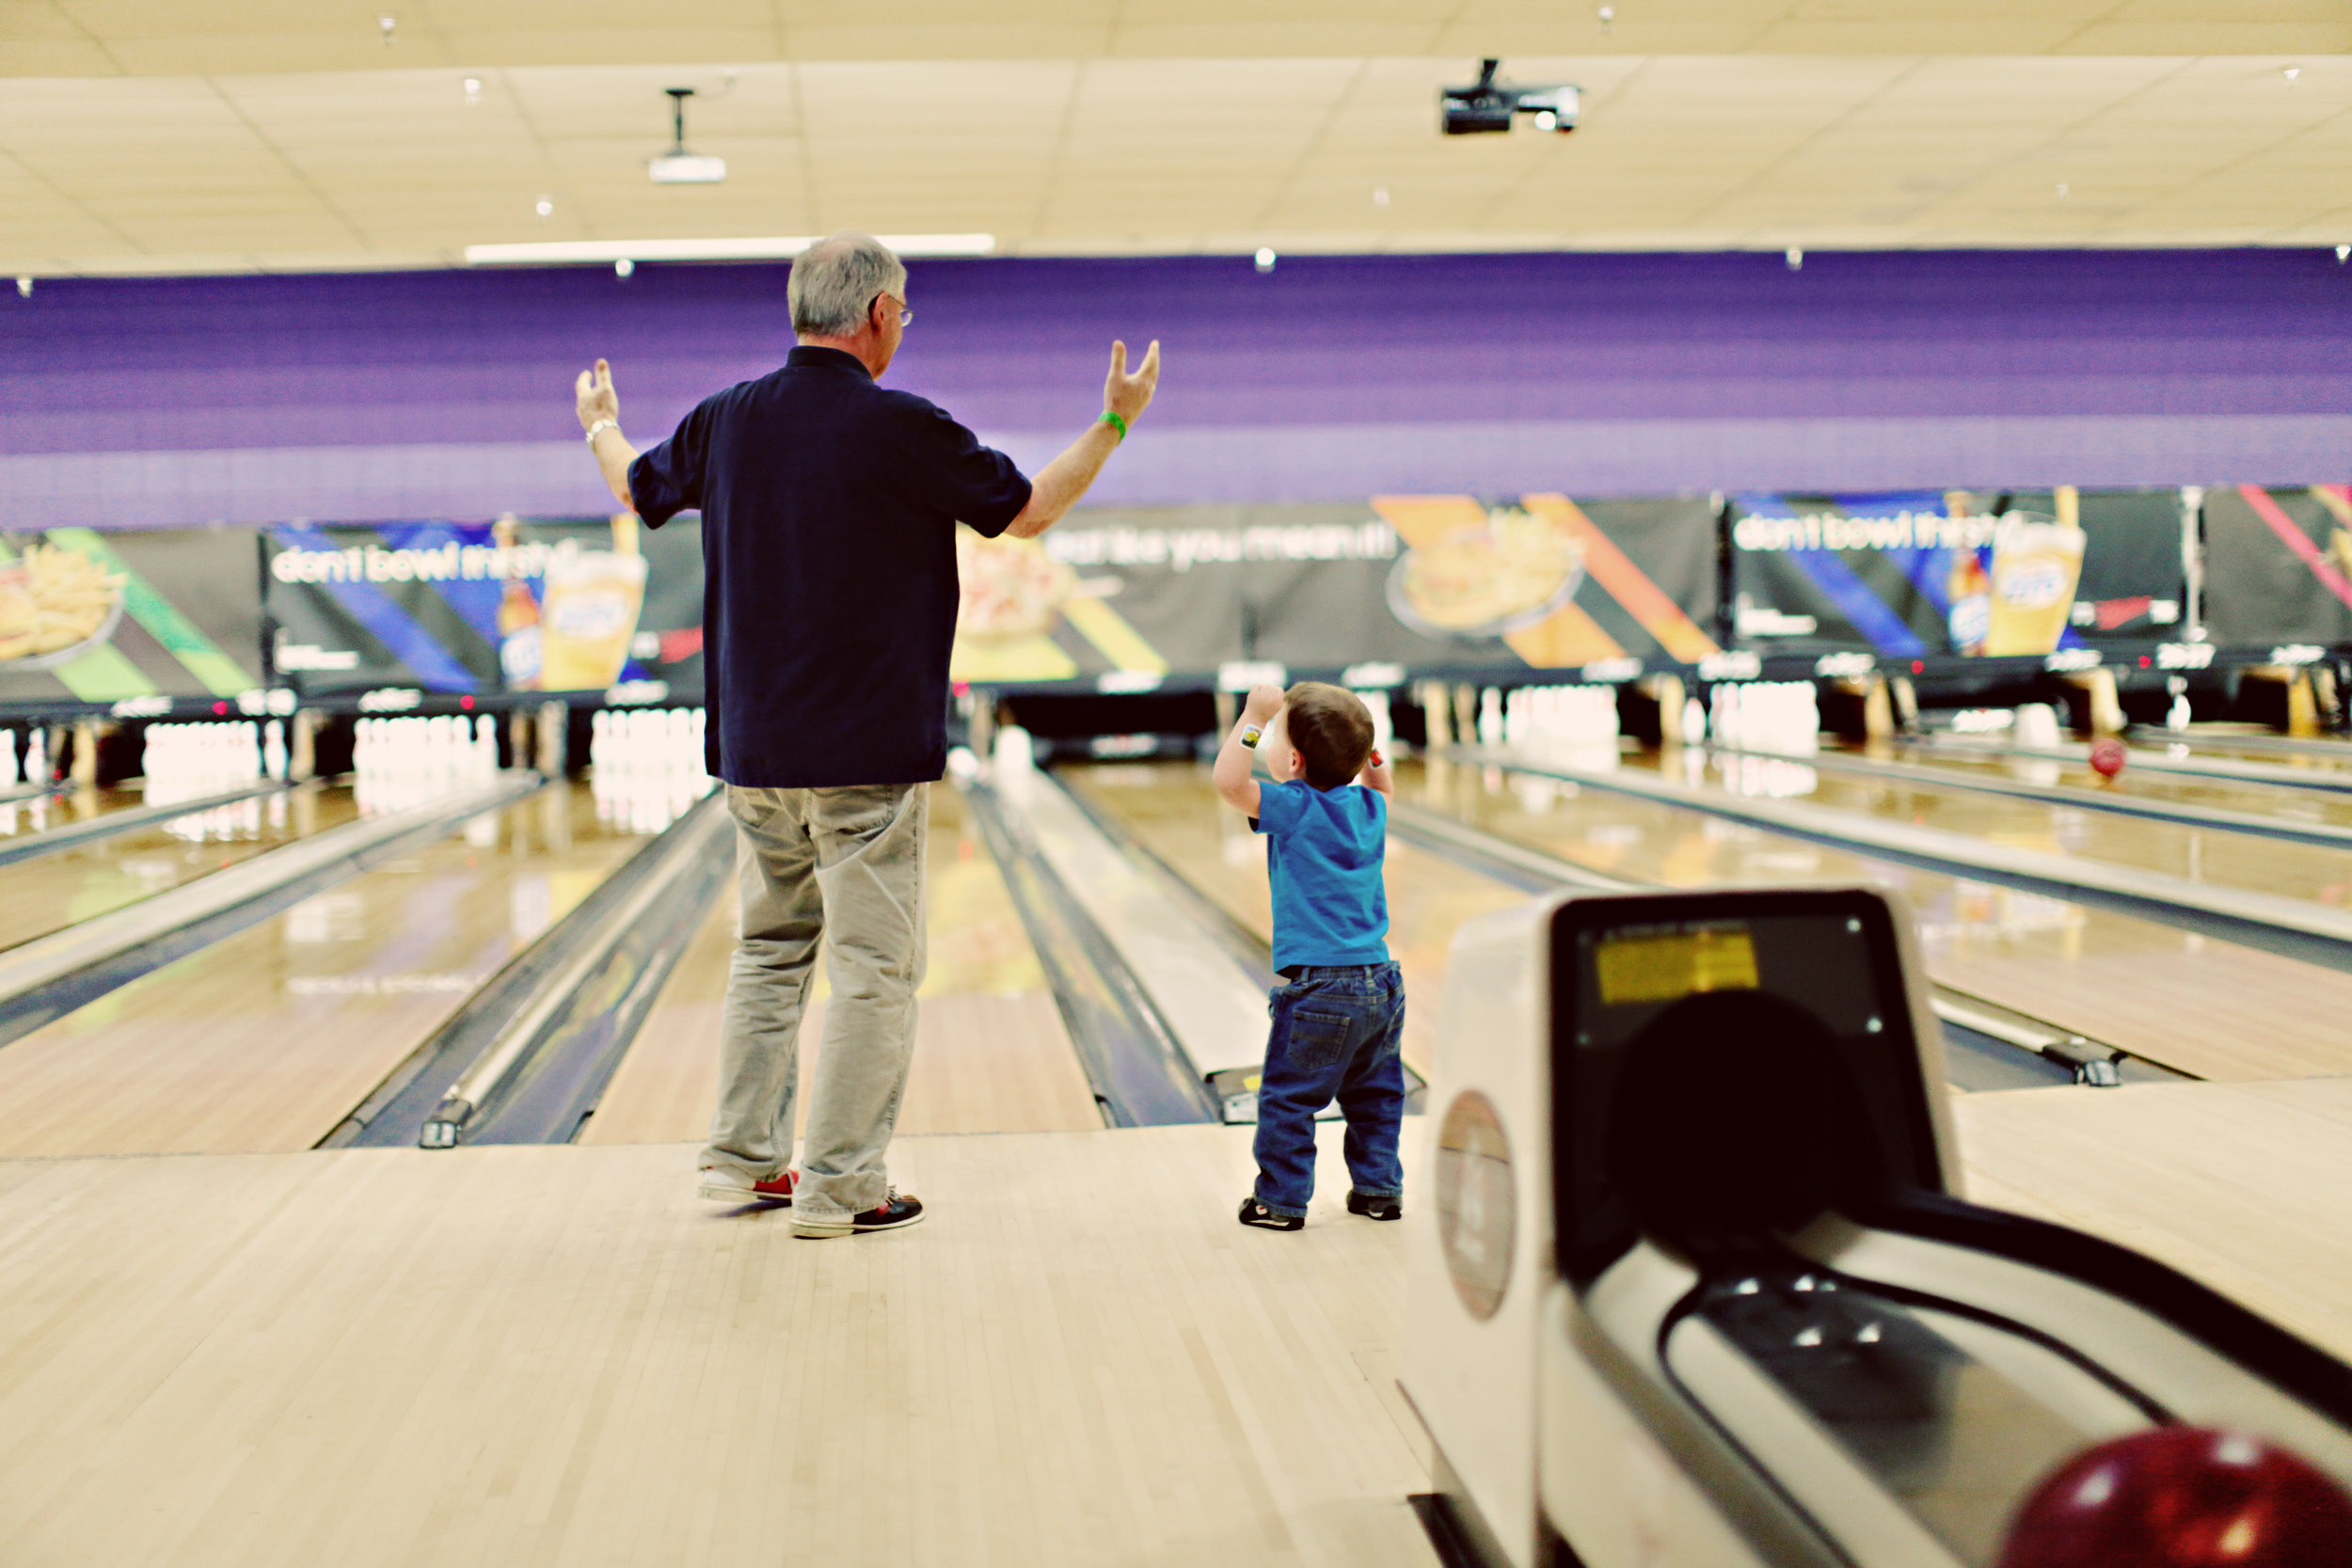 bowling-with-grandpa-and-toddler_t20_ZnJ2mb.jpg